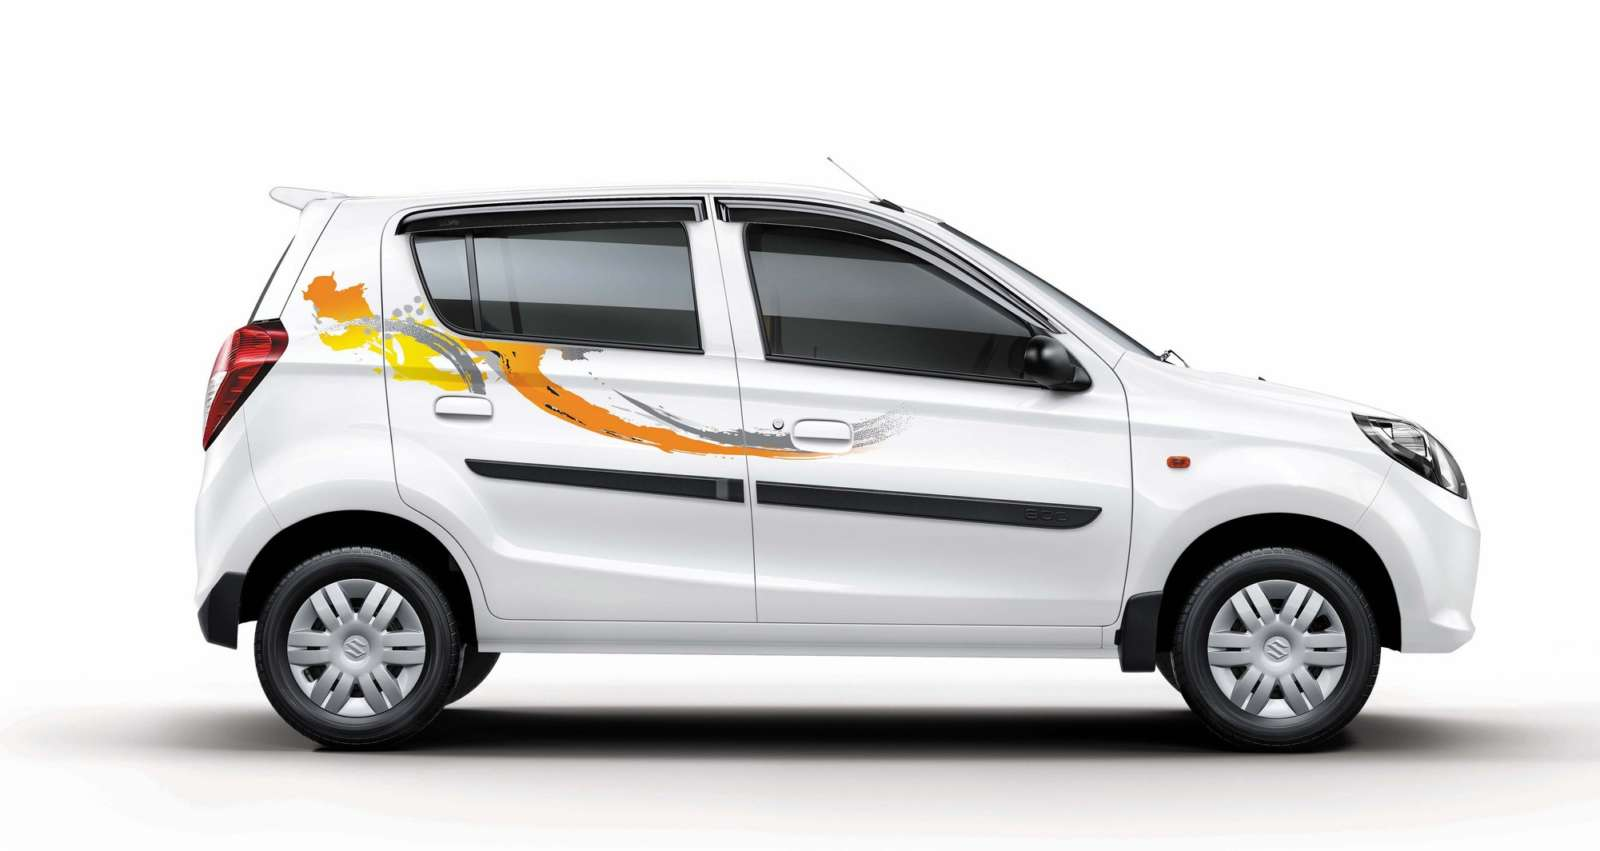 Limited Edition Maruti Alto 800 Onam Launched In India